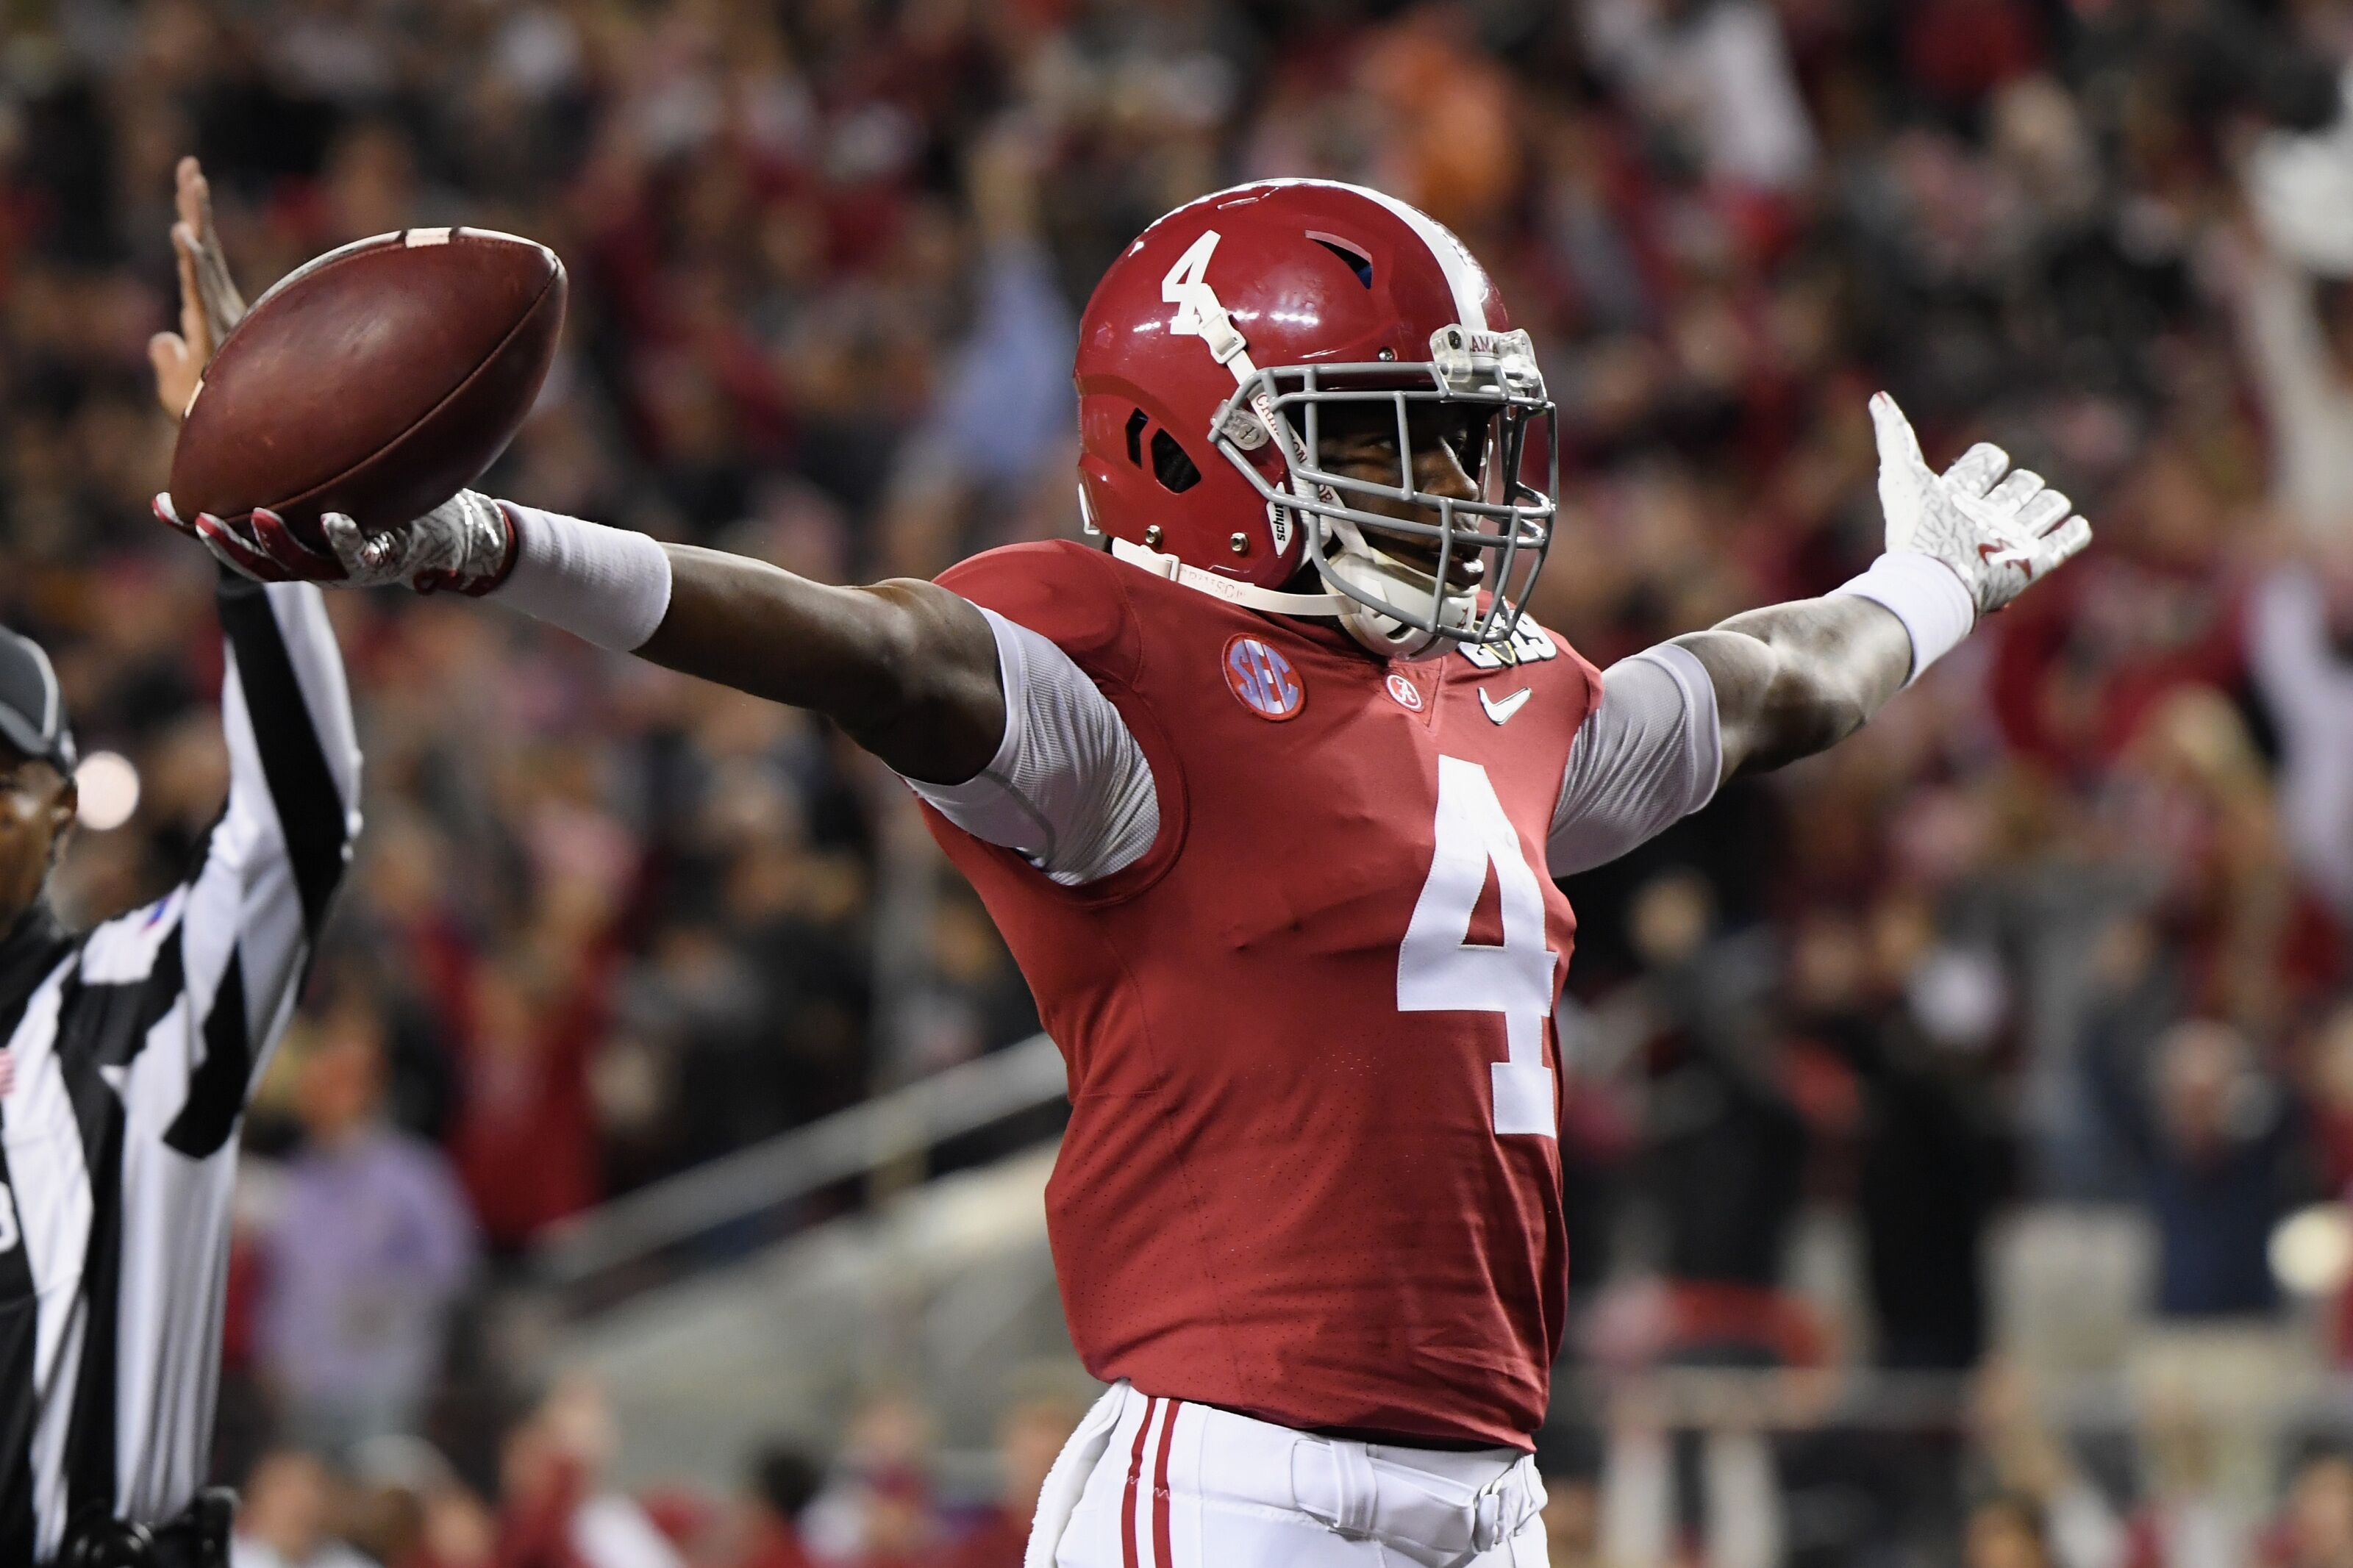 Alabama's Jerry Jeudy has the juice to be No. 1 overall pick